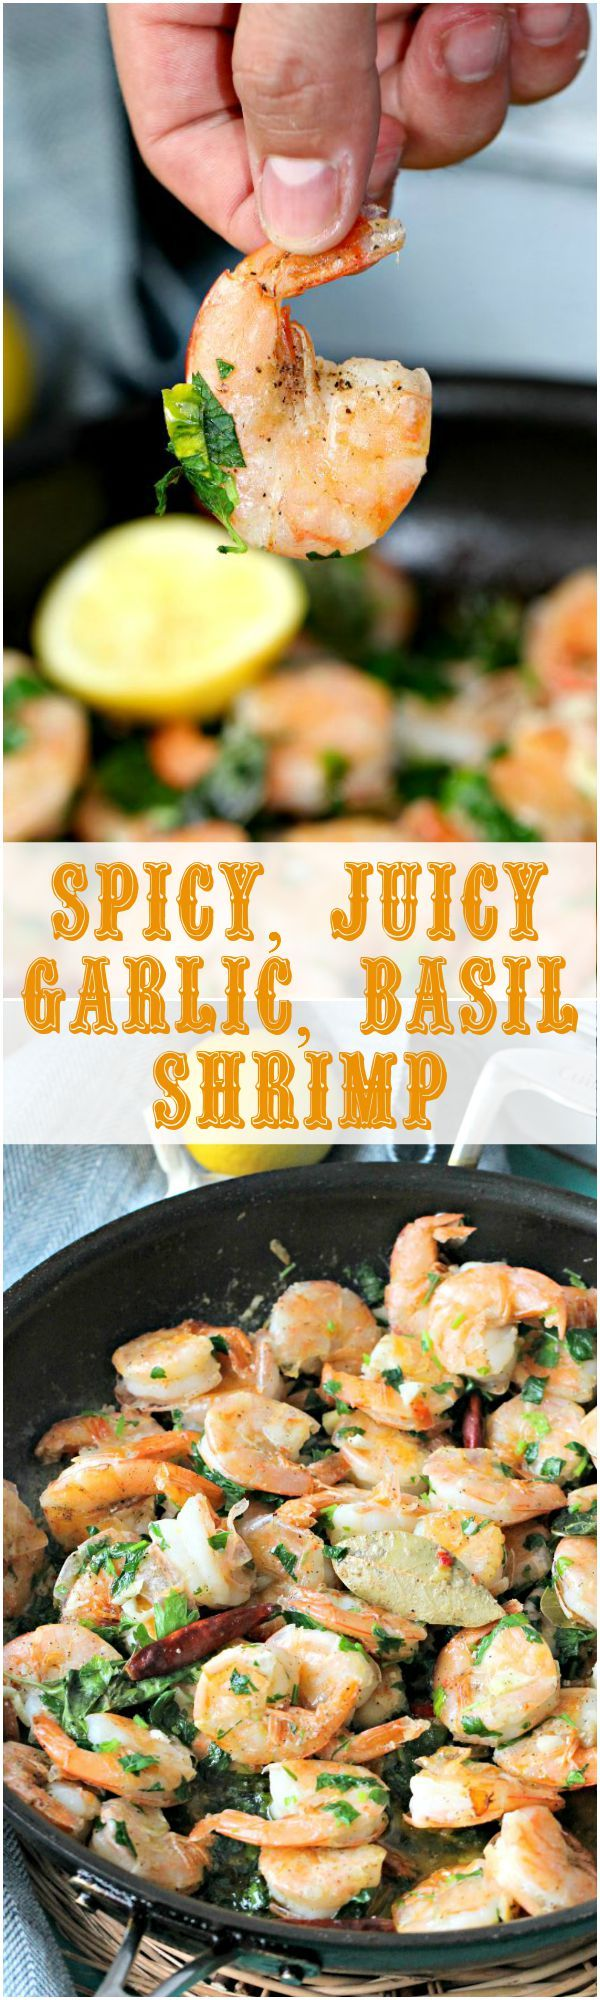 Spicy Garlic Shrimp Recipe with Lemon and Basil - Peas and Peonies